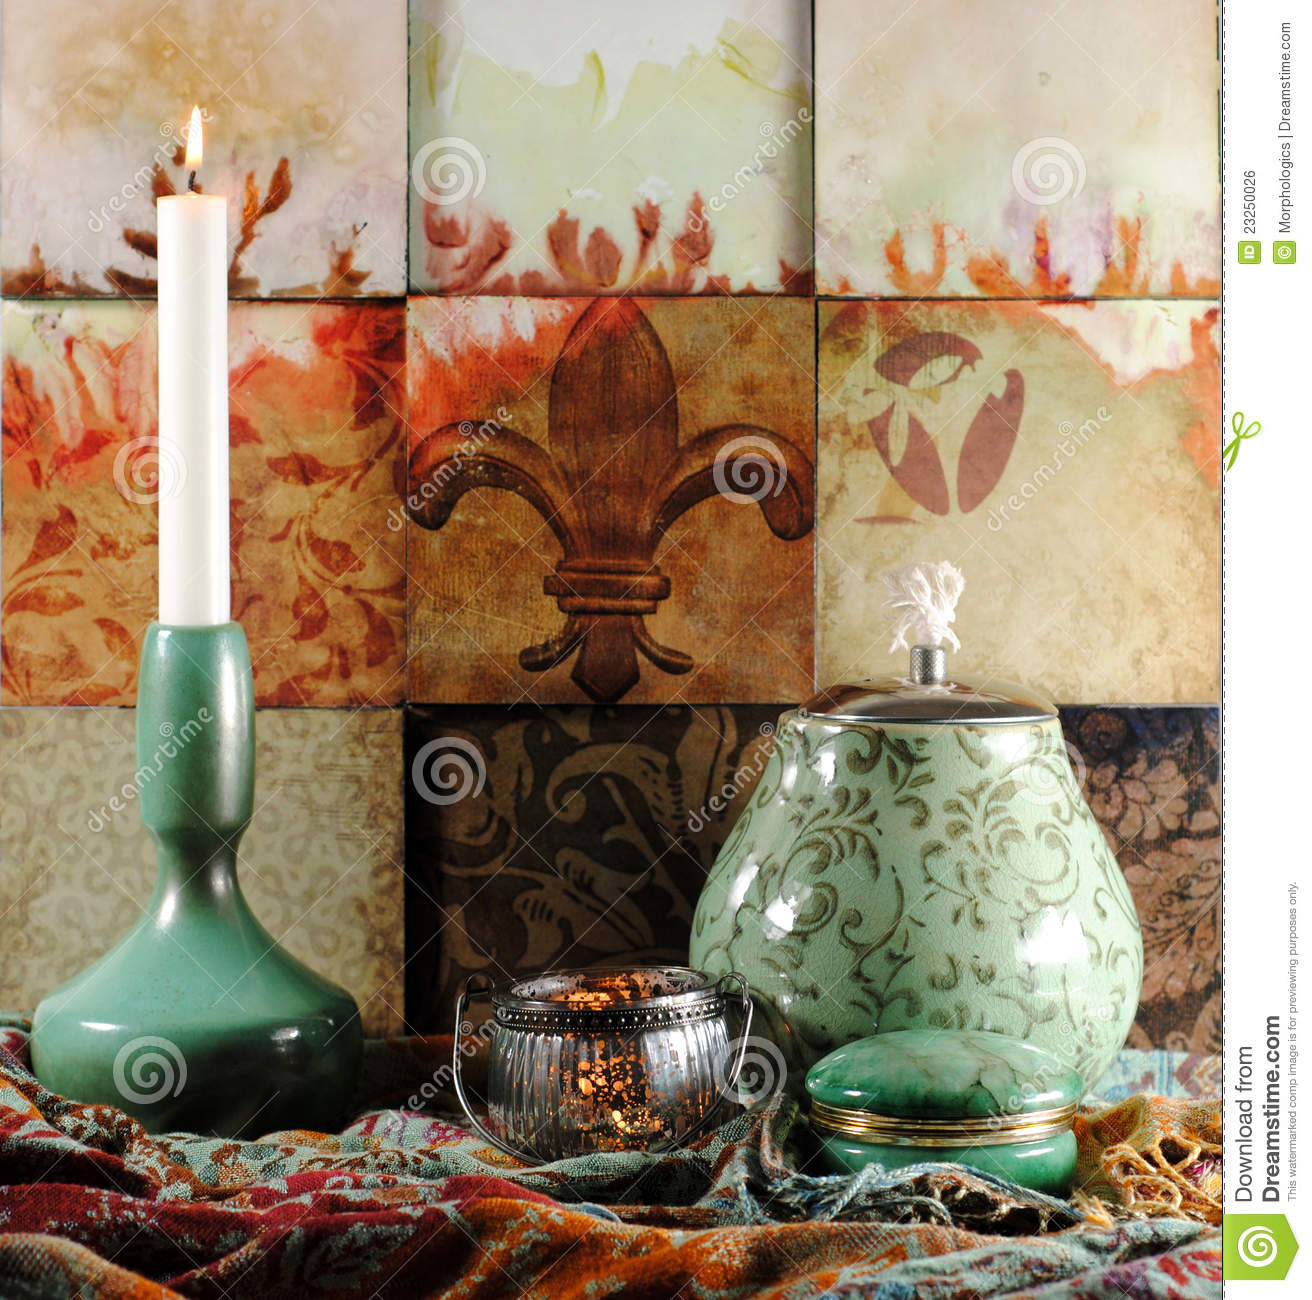 oriental decoration objects royalty free stock image image 23250026. Black Bedroom Furniture Sets. Home Design Ideas